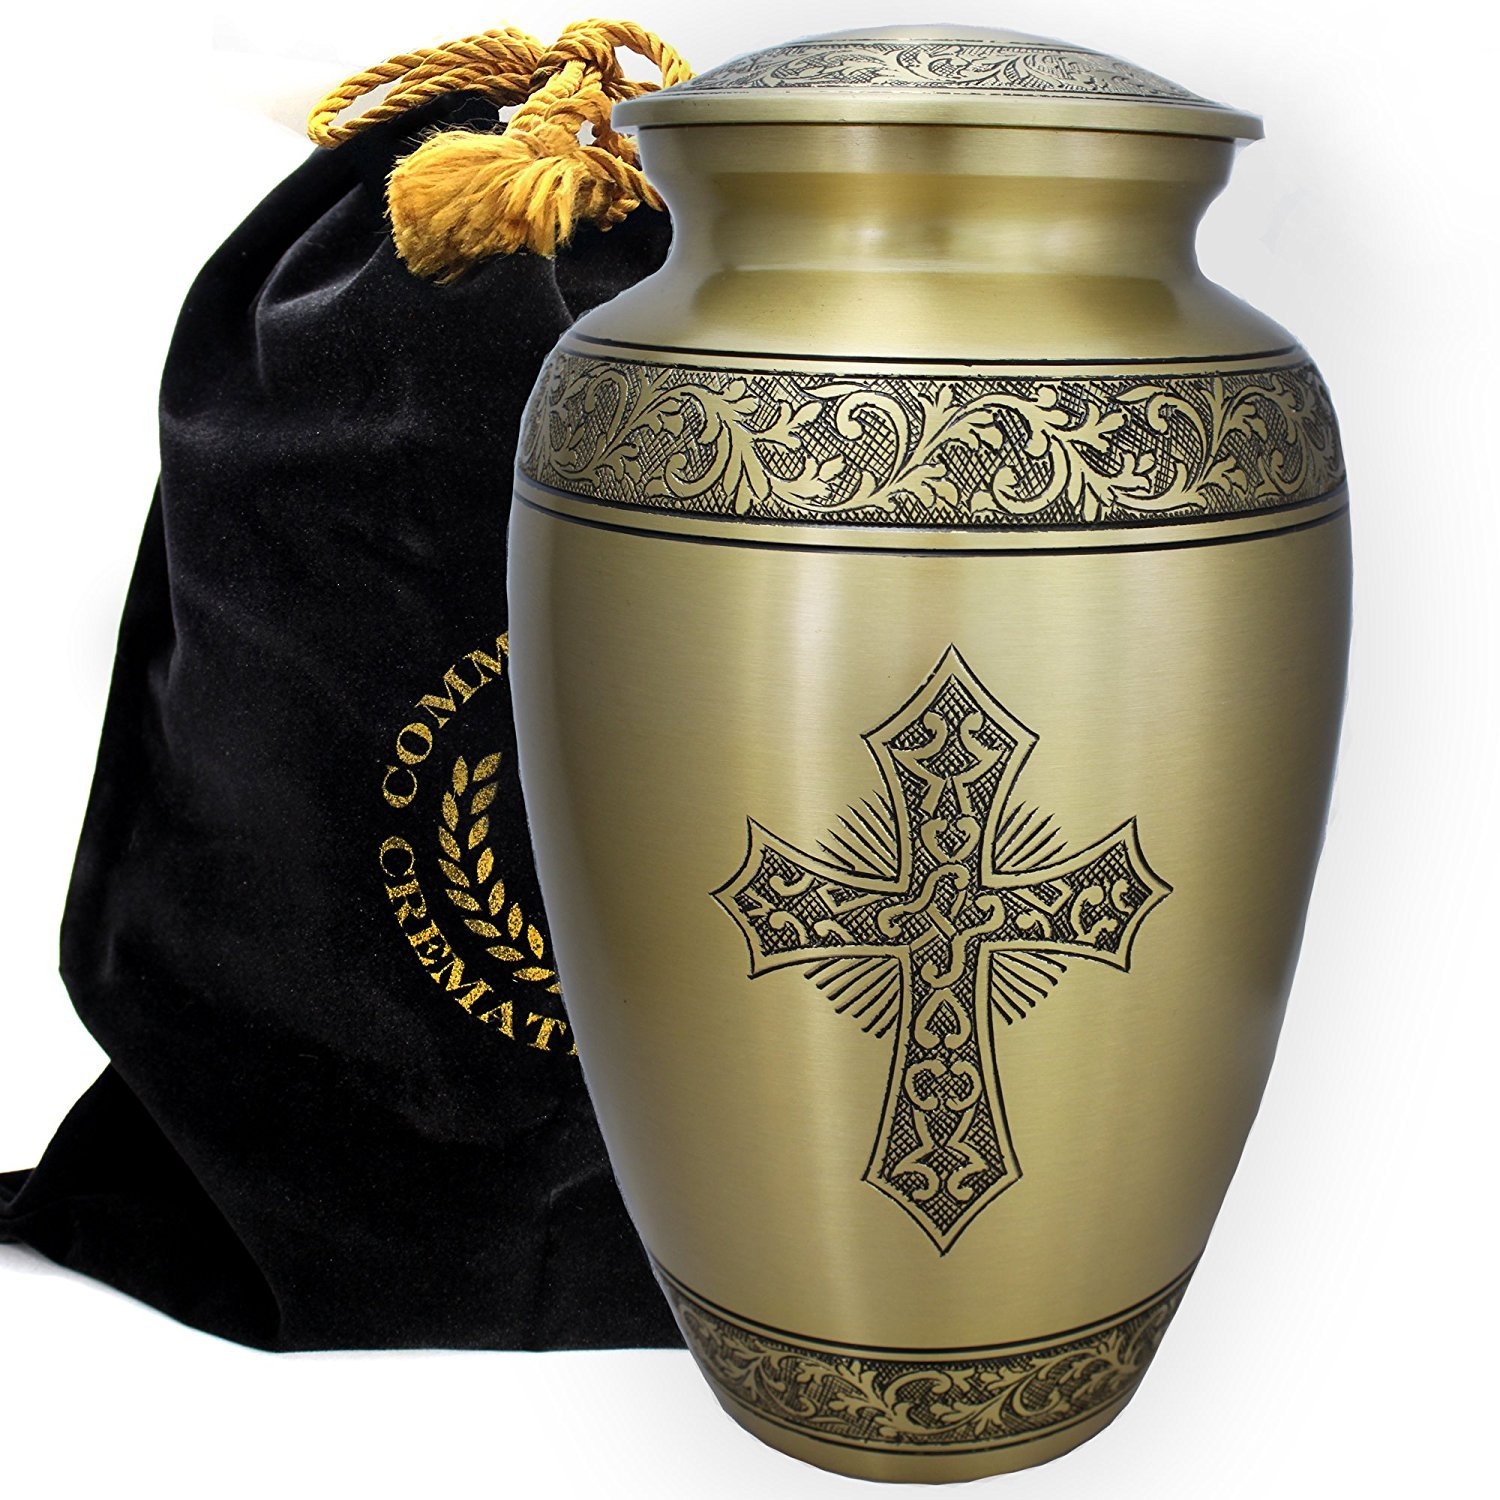 Love of Christ Gold Burial or Funeral Adult Cremation Urn for Human Ashes - Large, Adult